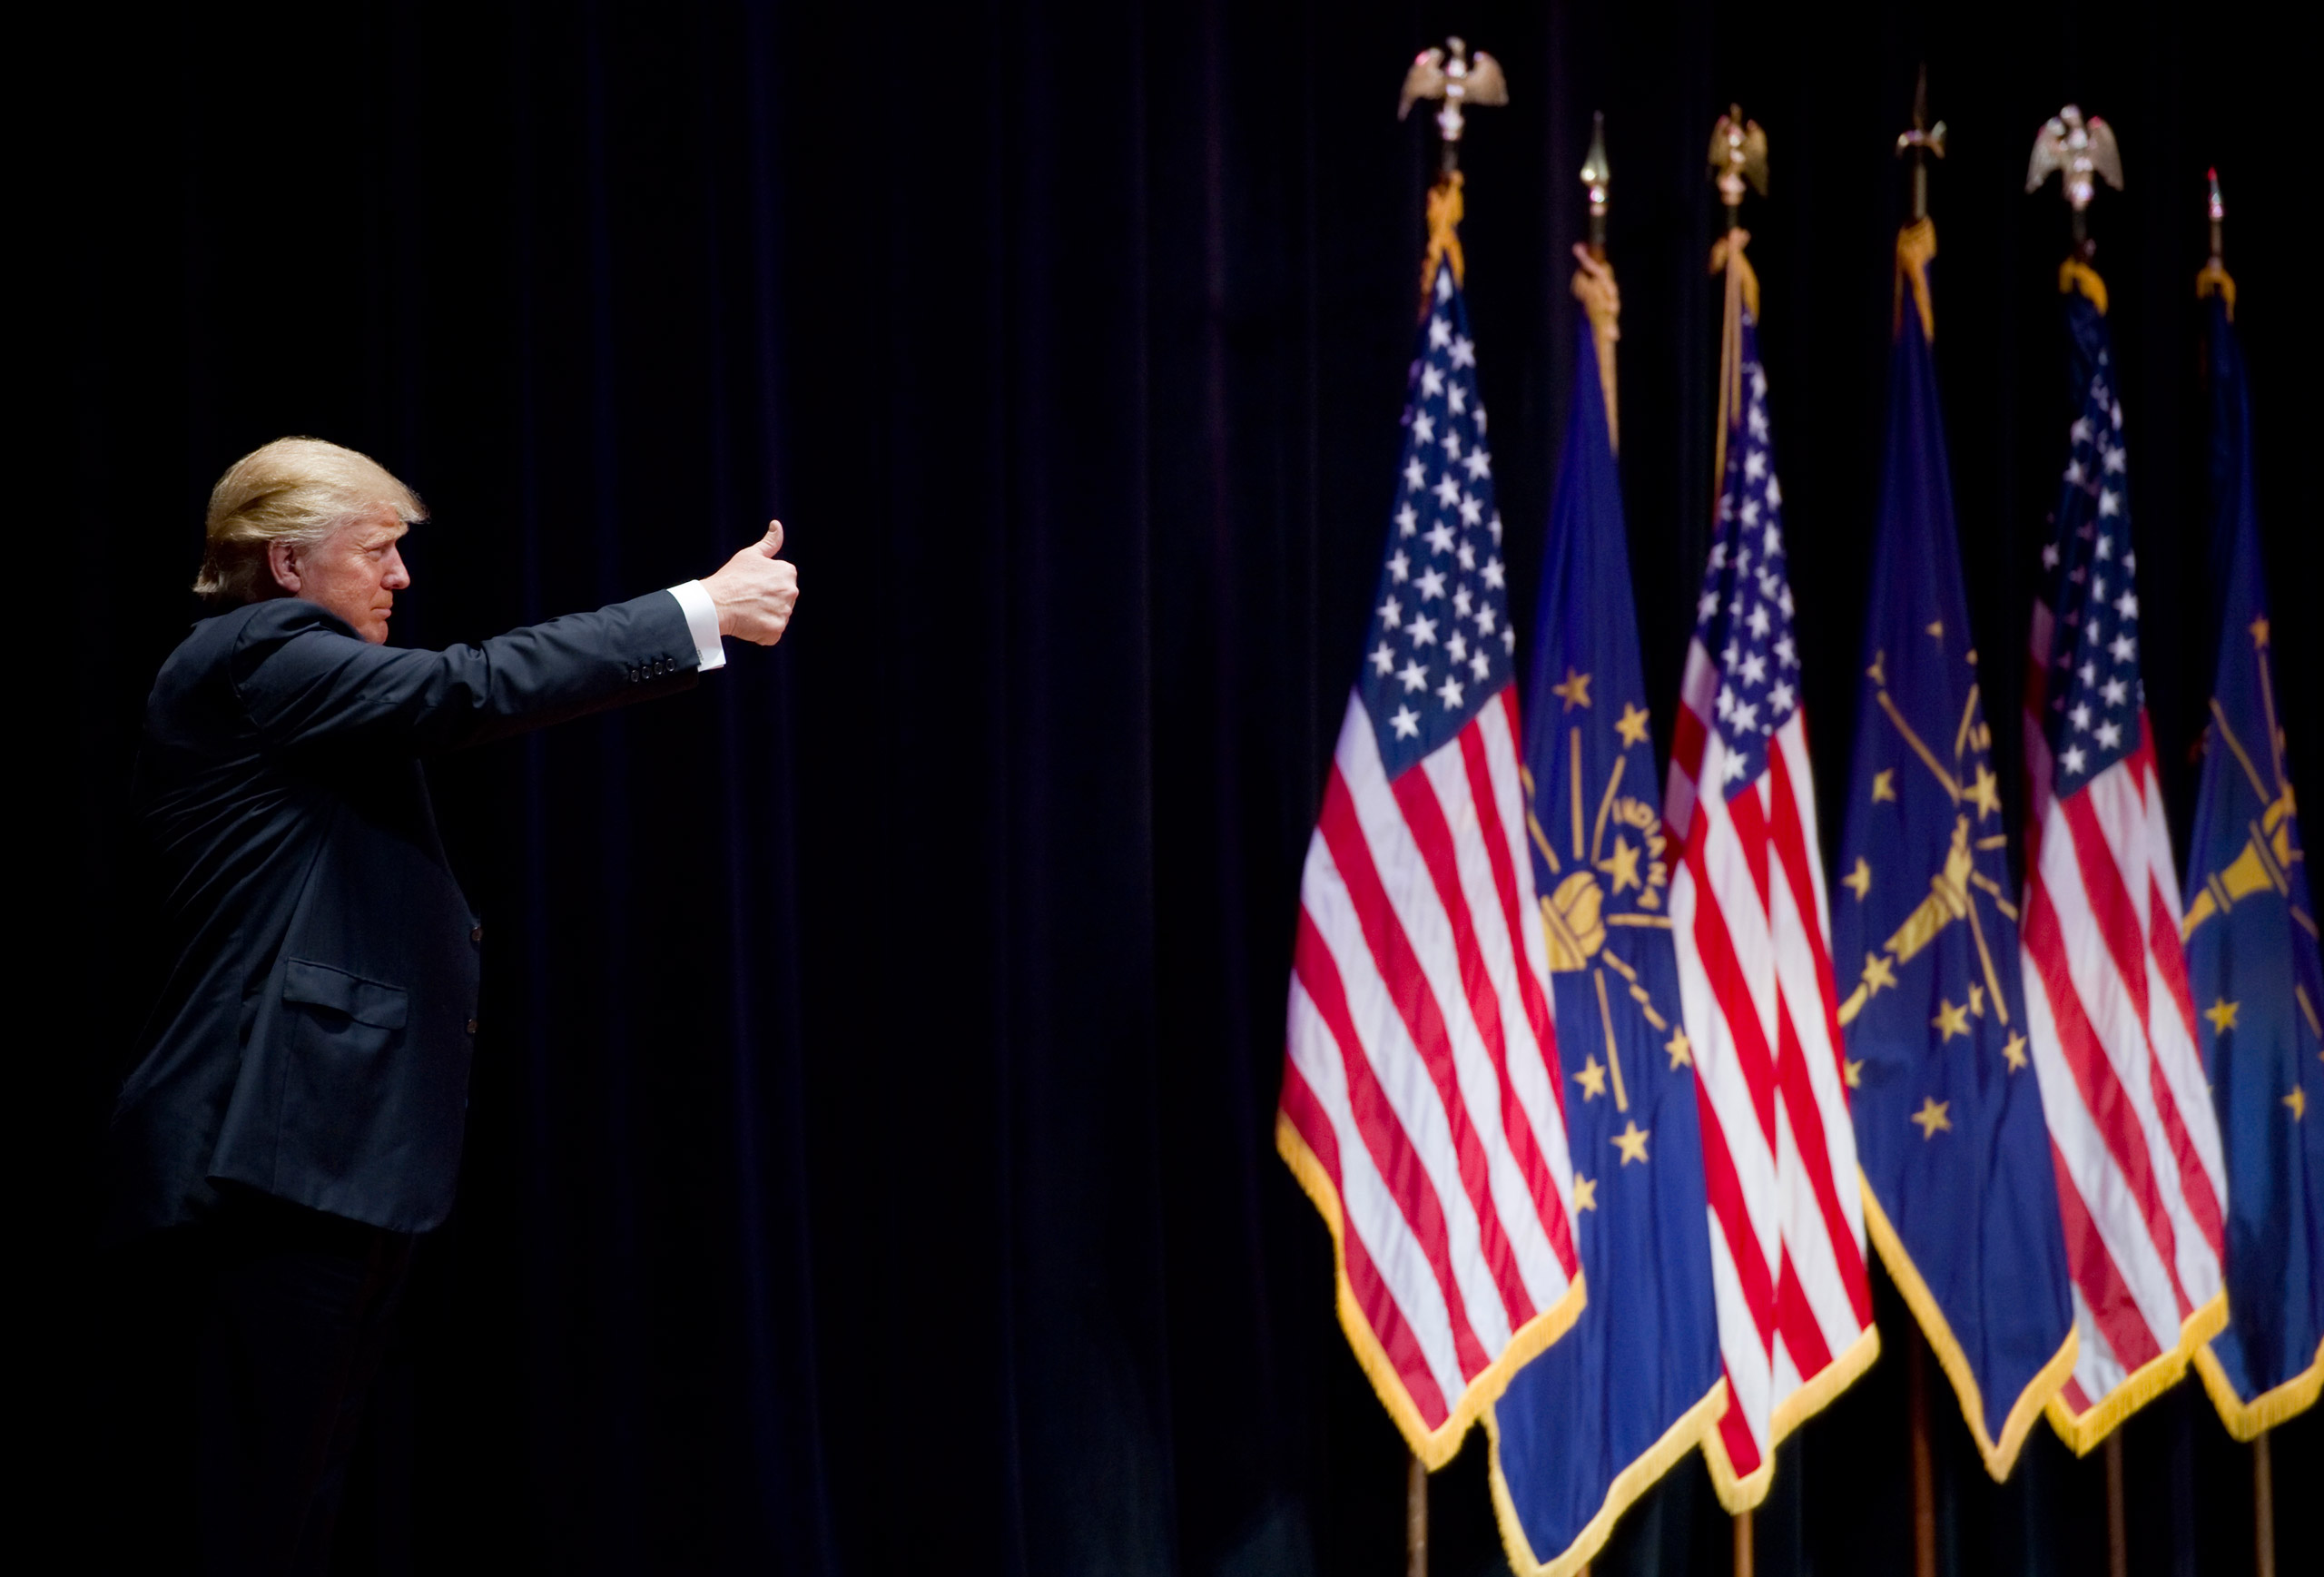 Donald Trump acknowledges the crowd before leaving the stage at the Aiken Theatre in Evansville, Ind., on May 6, 2016.